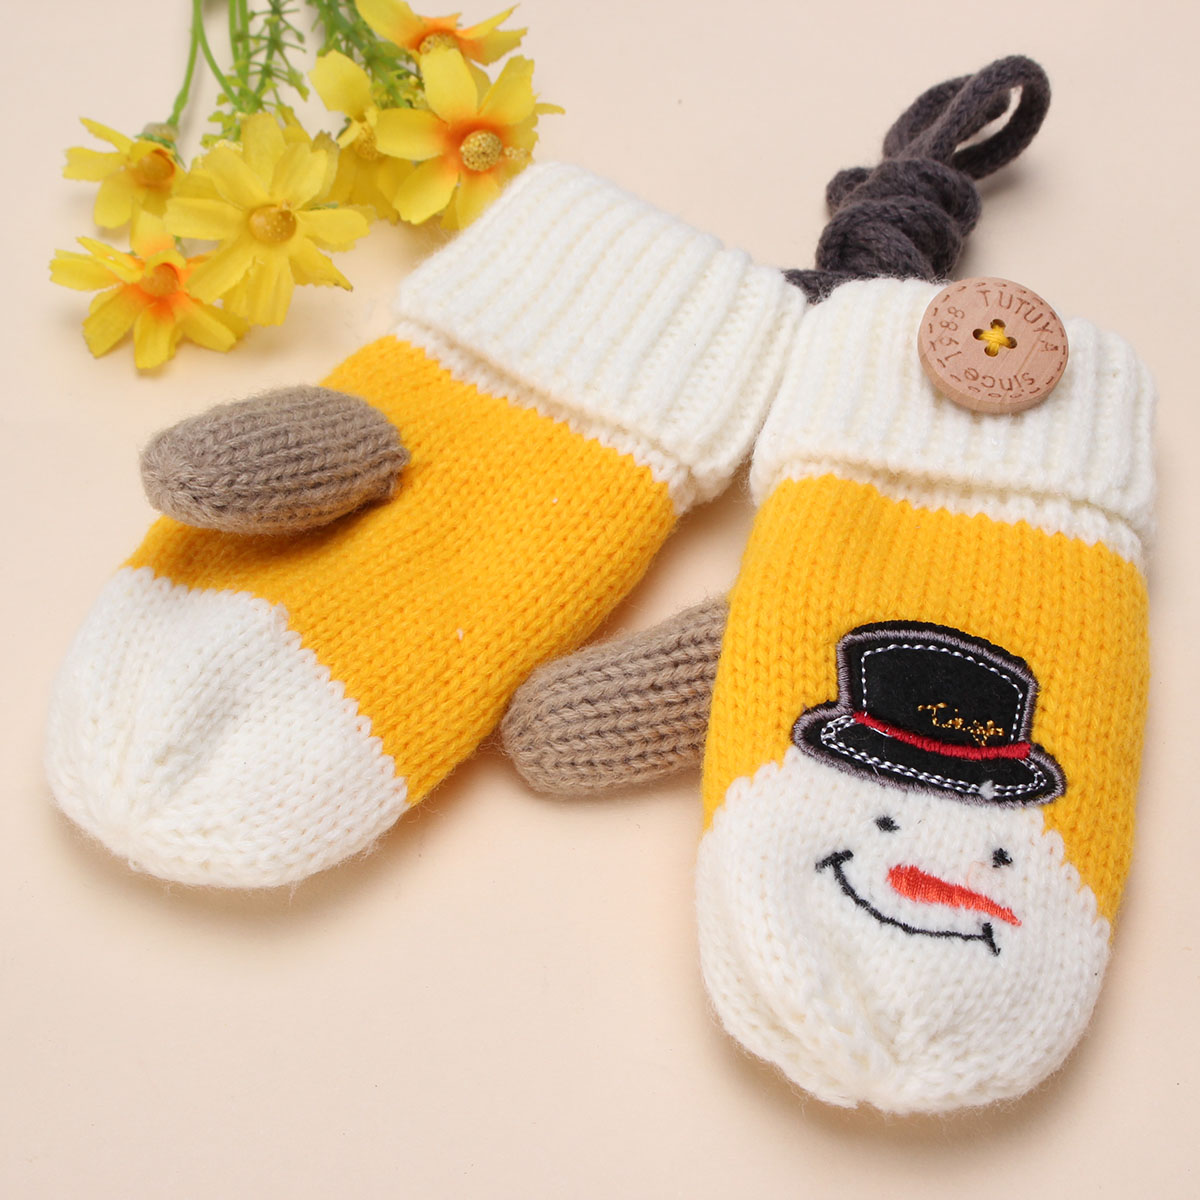 Christmas-Winter-Kids-Girl-Baby-Knitted-Warm-Mittens-Xmas-Ski-Gloves-Xmas-Gift-1019465